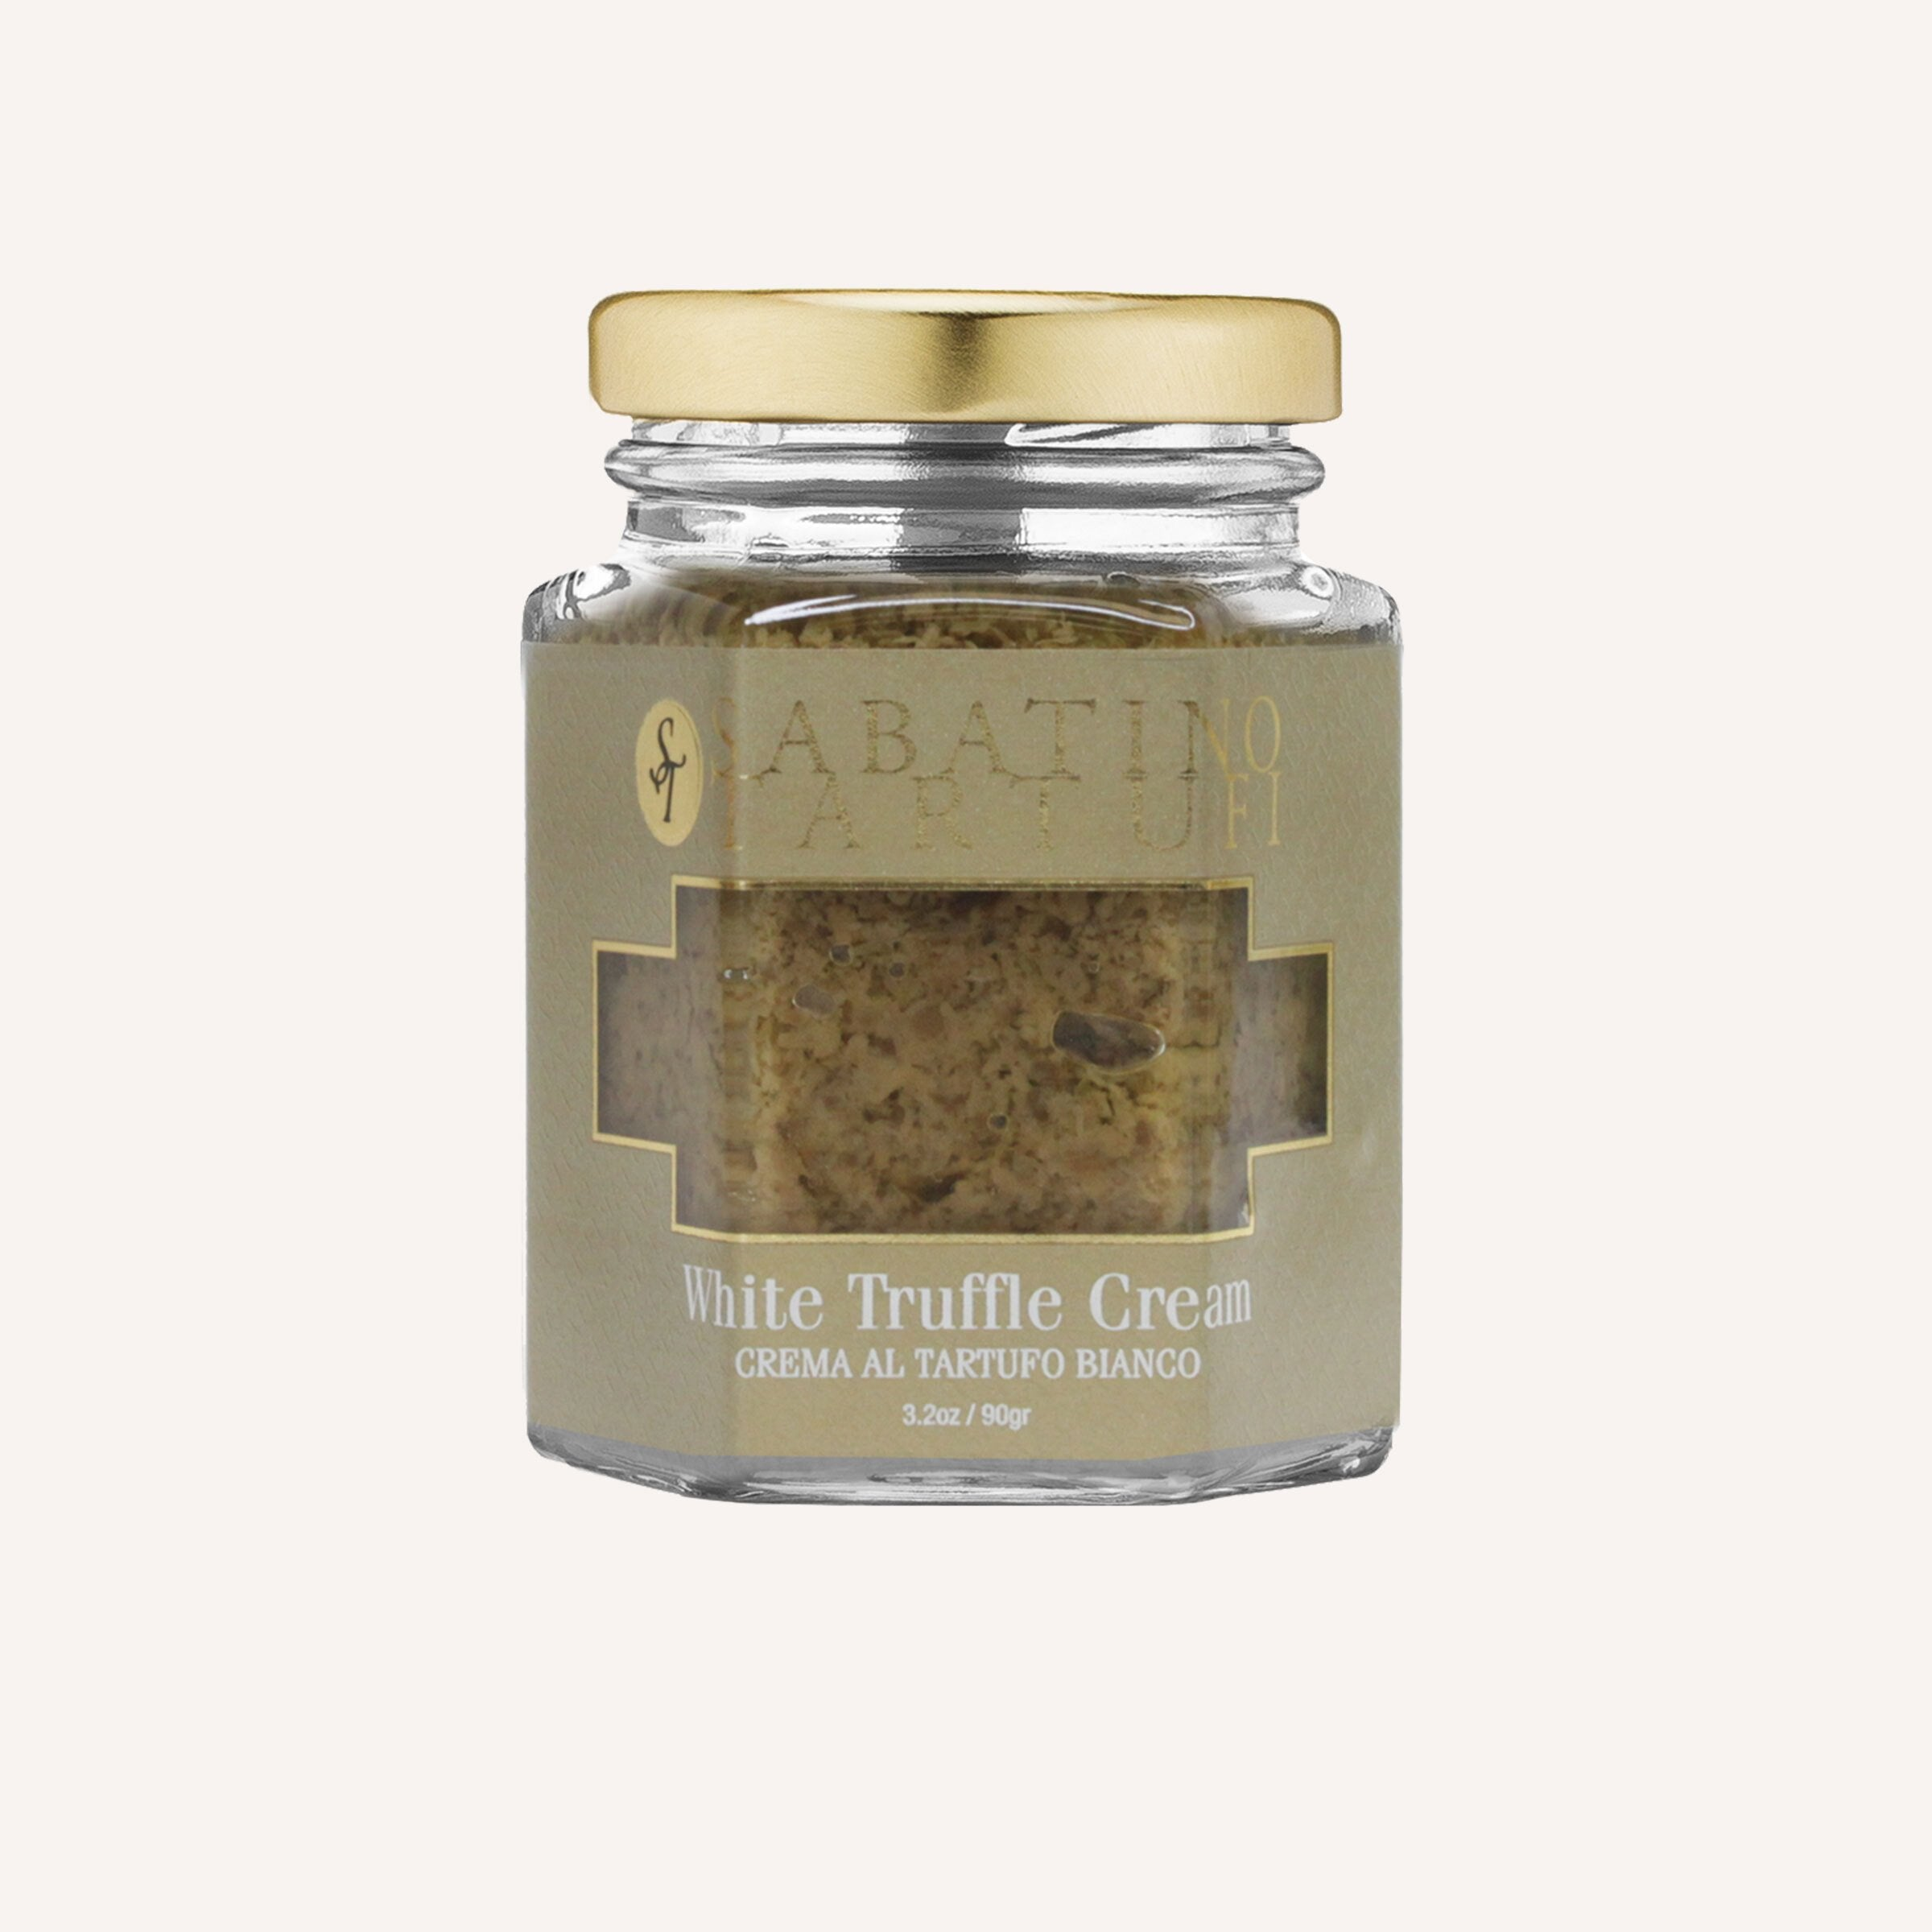 White Truffle Cream - 3.2 oz <br>Case Pack 6 Units